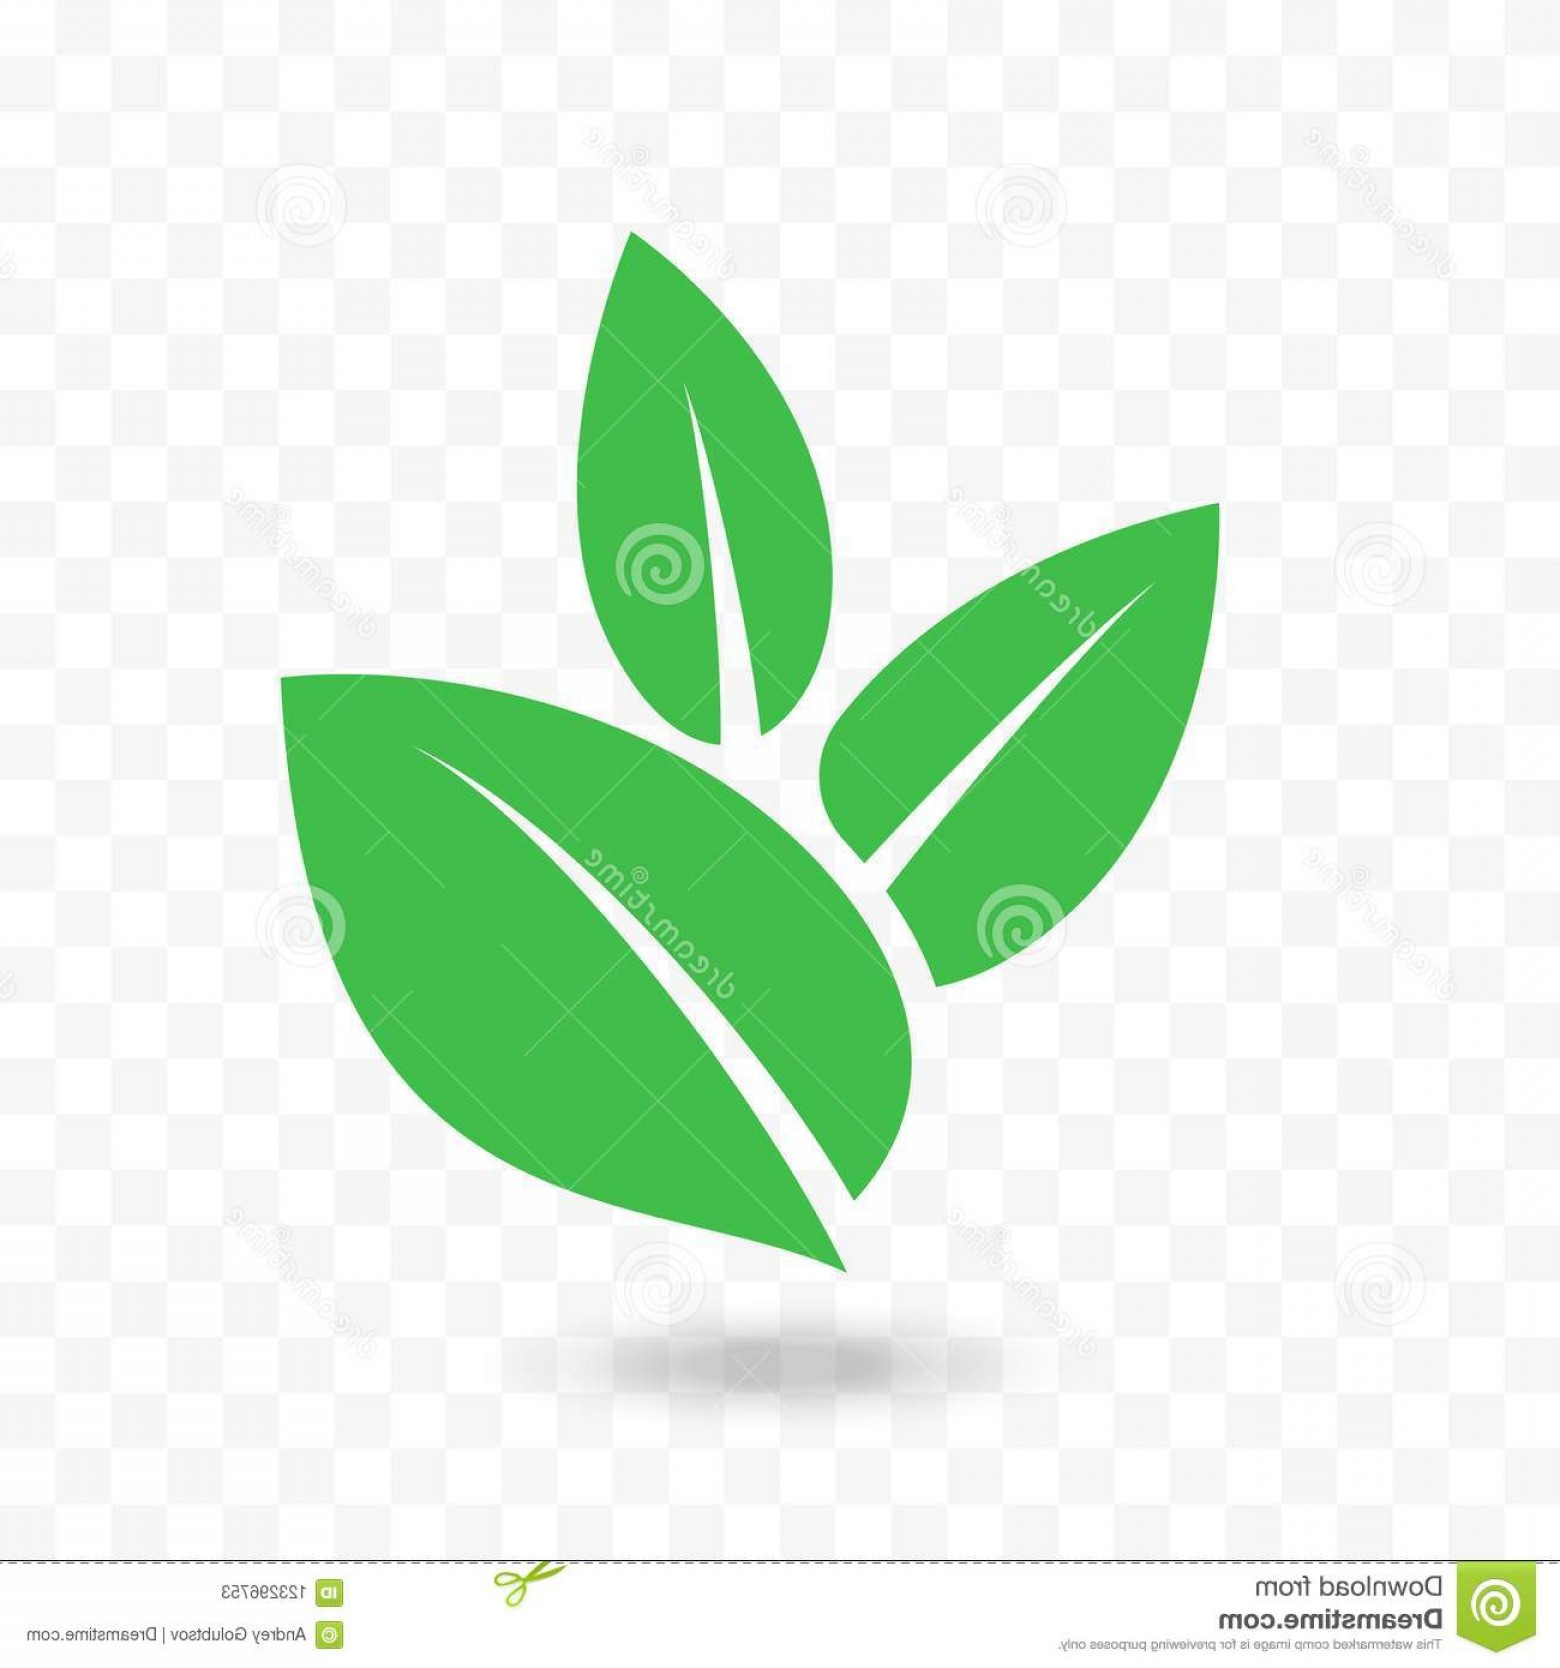 Leaf Vector Logo: Green Leaf Vector Icon Vegan Bio Eco Design Green Leaf Vector Logo Eco Bio Vegan Concept Design Isolated Leaves Icon Image